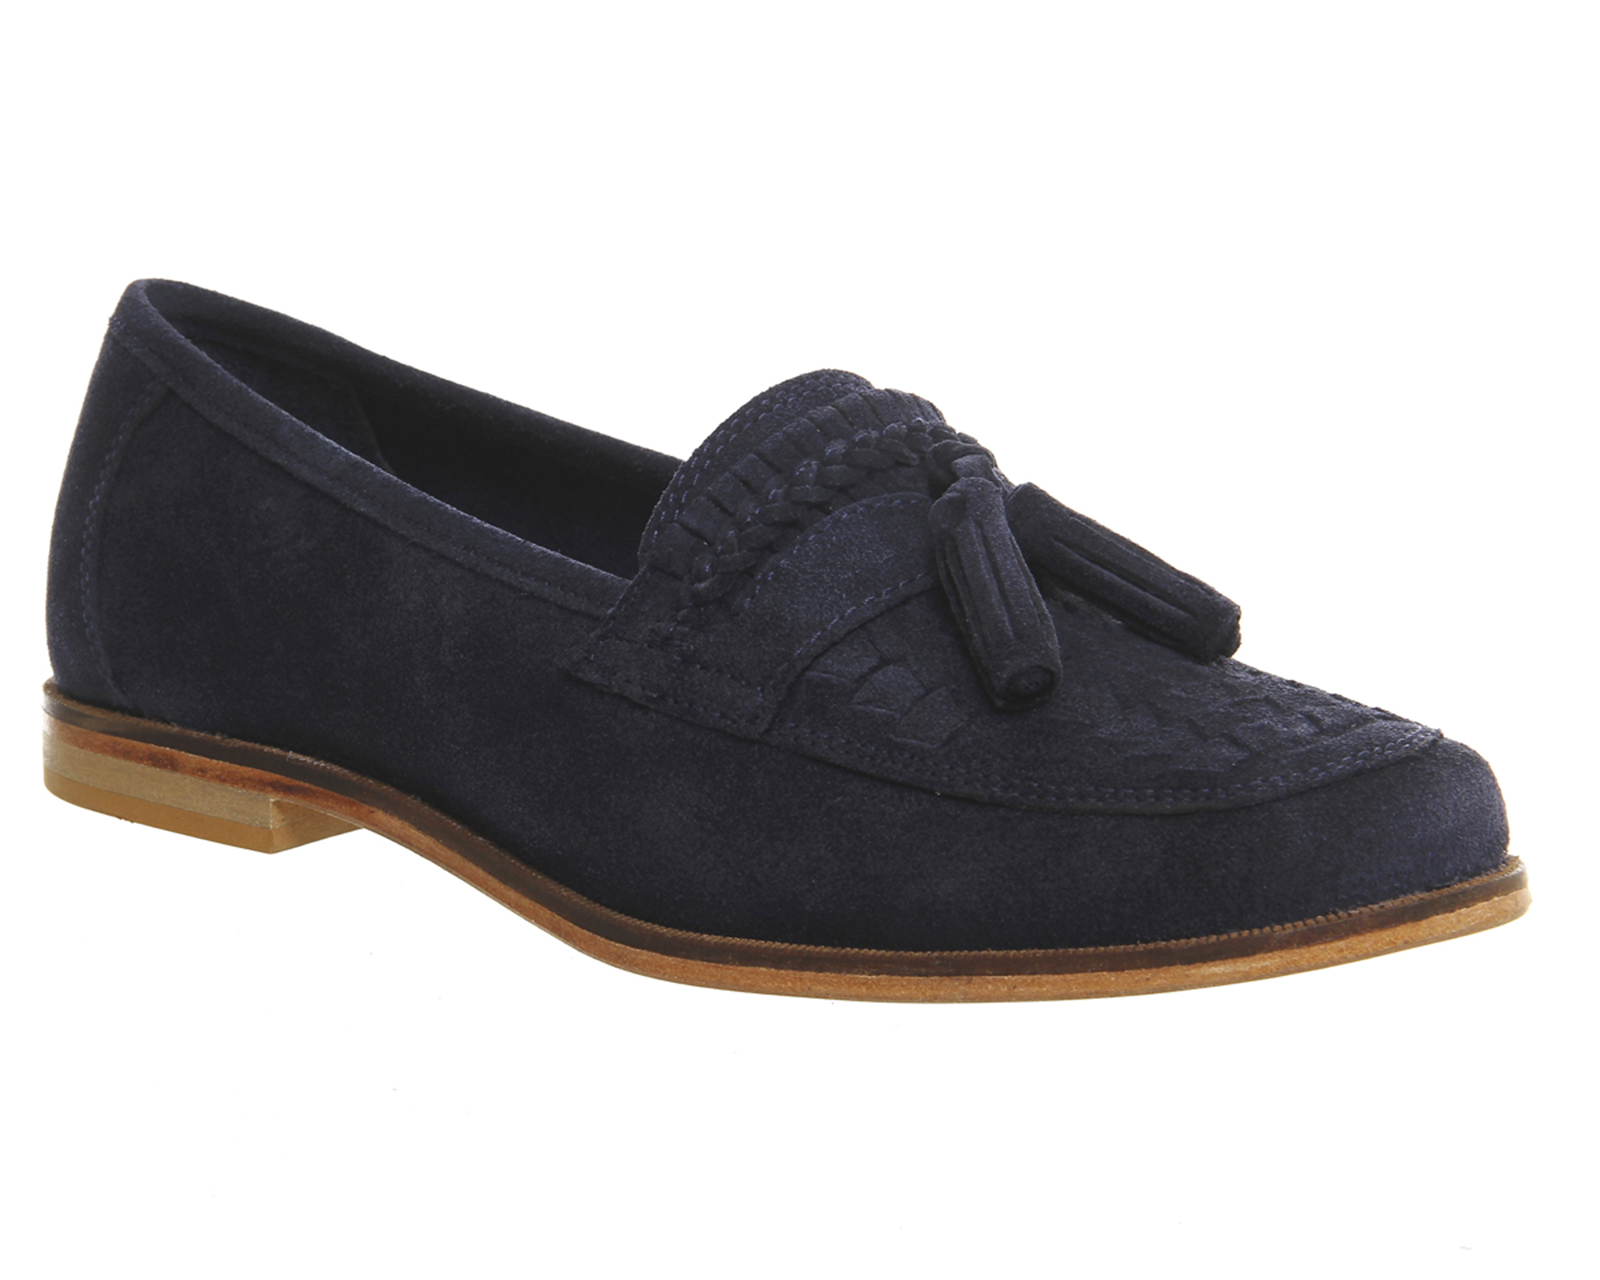 Mens Office Bank Tassel Loafers NAVY SUEDE Casual Shoes